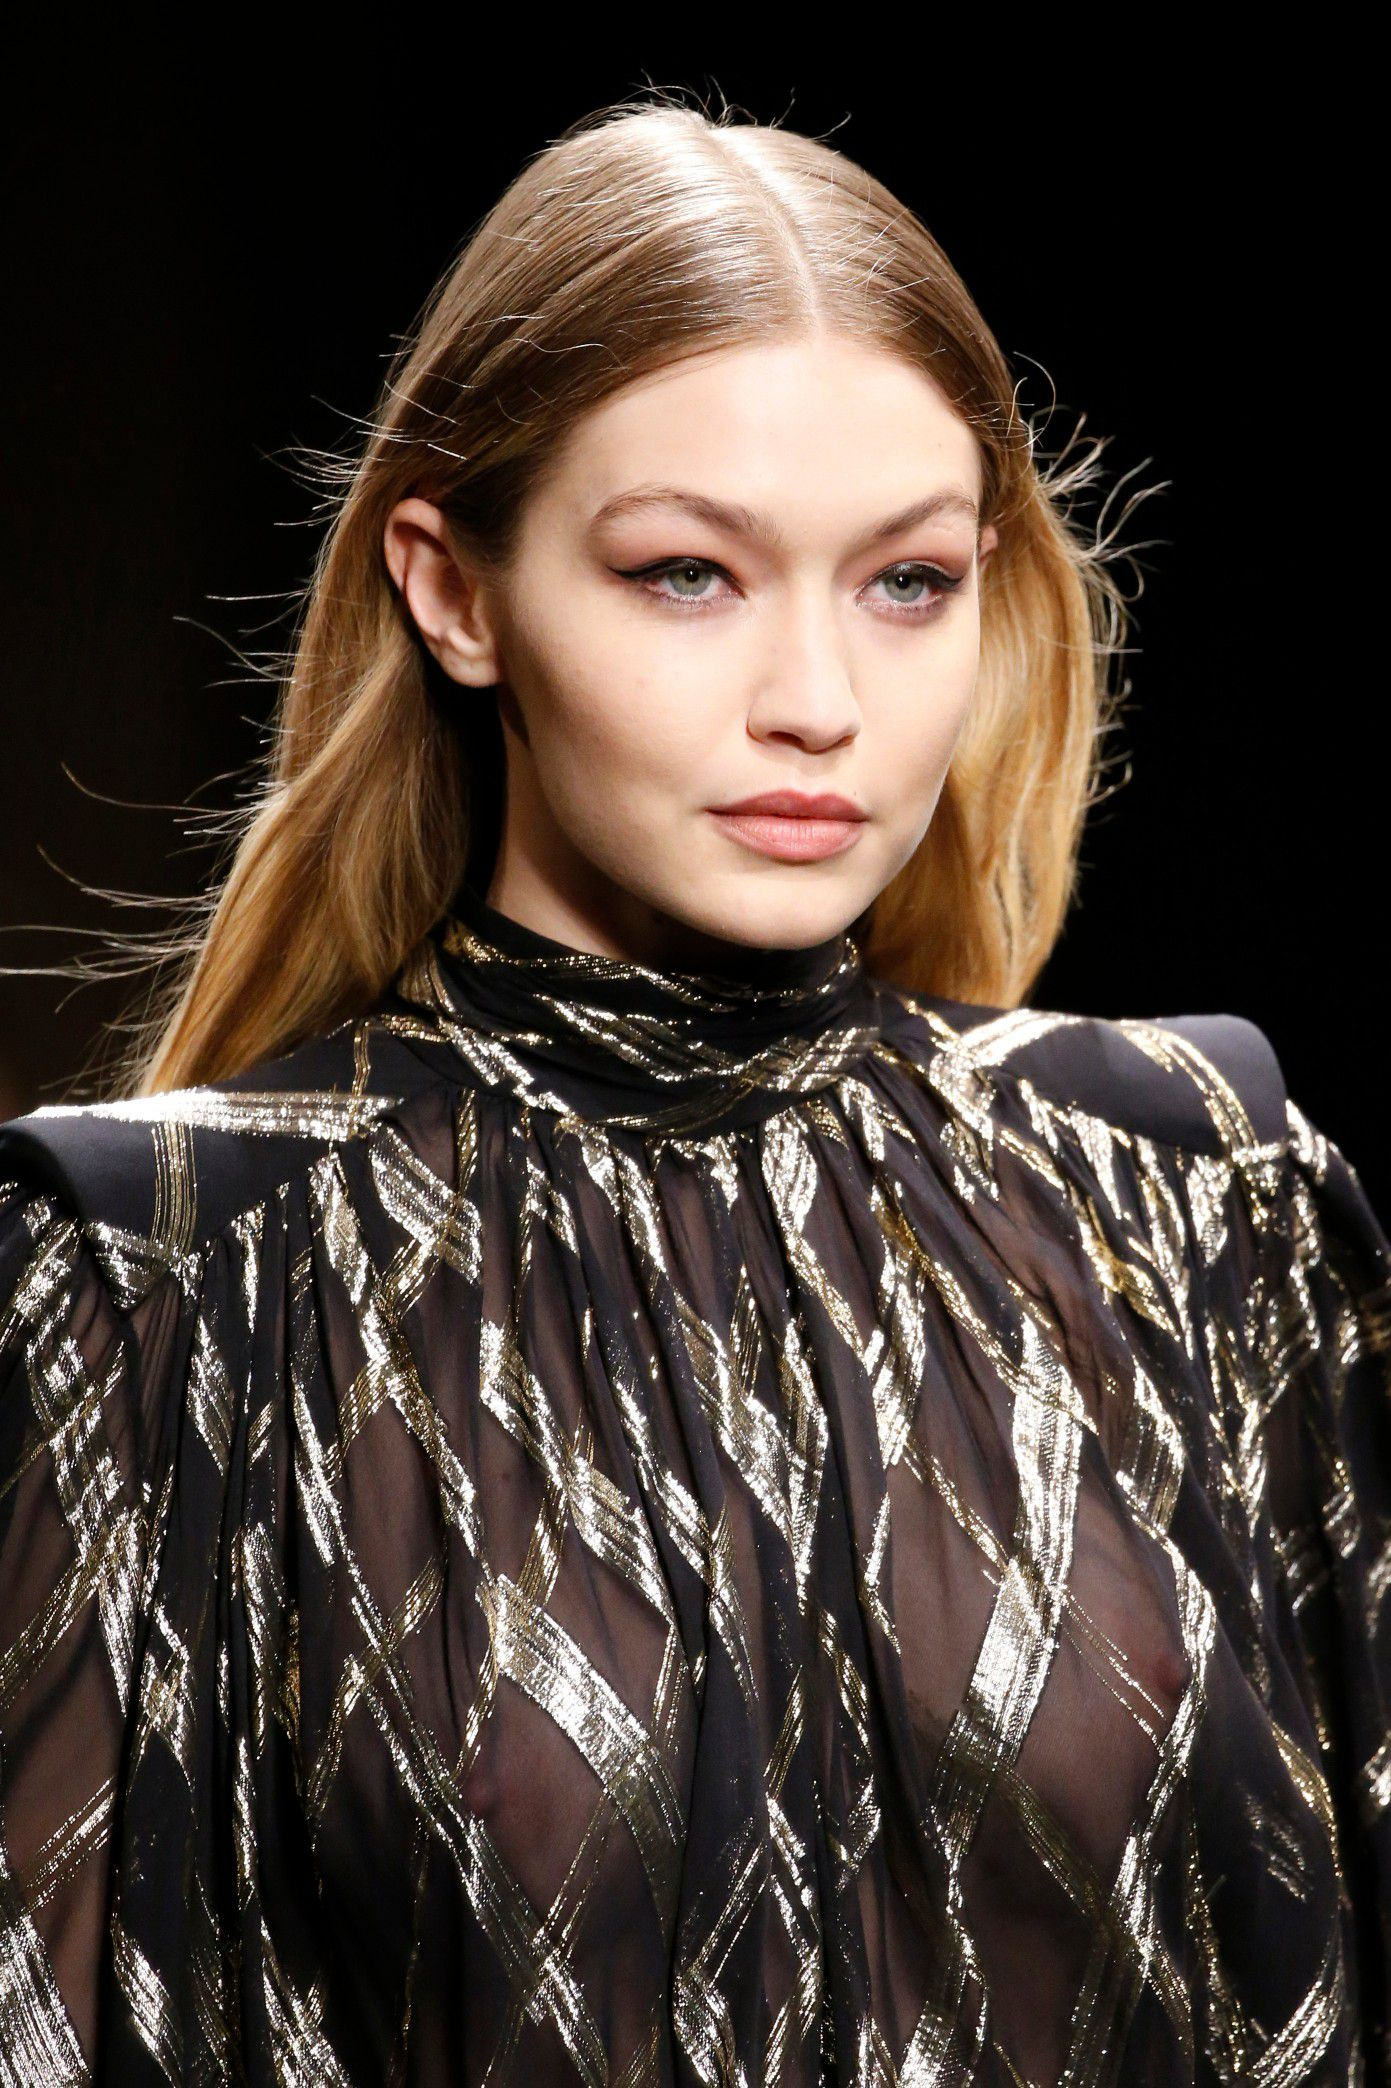 gigi-hadid-braless-see-thru-dress-at-milan-fashion-show-2223